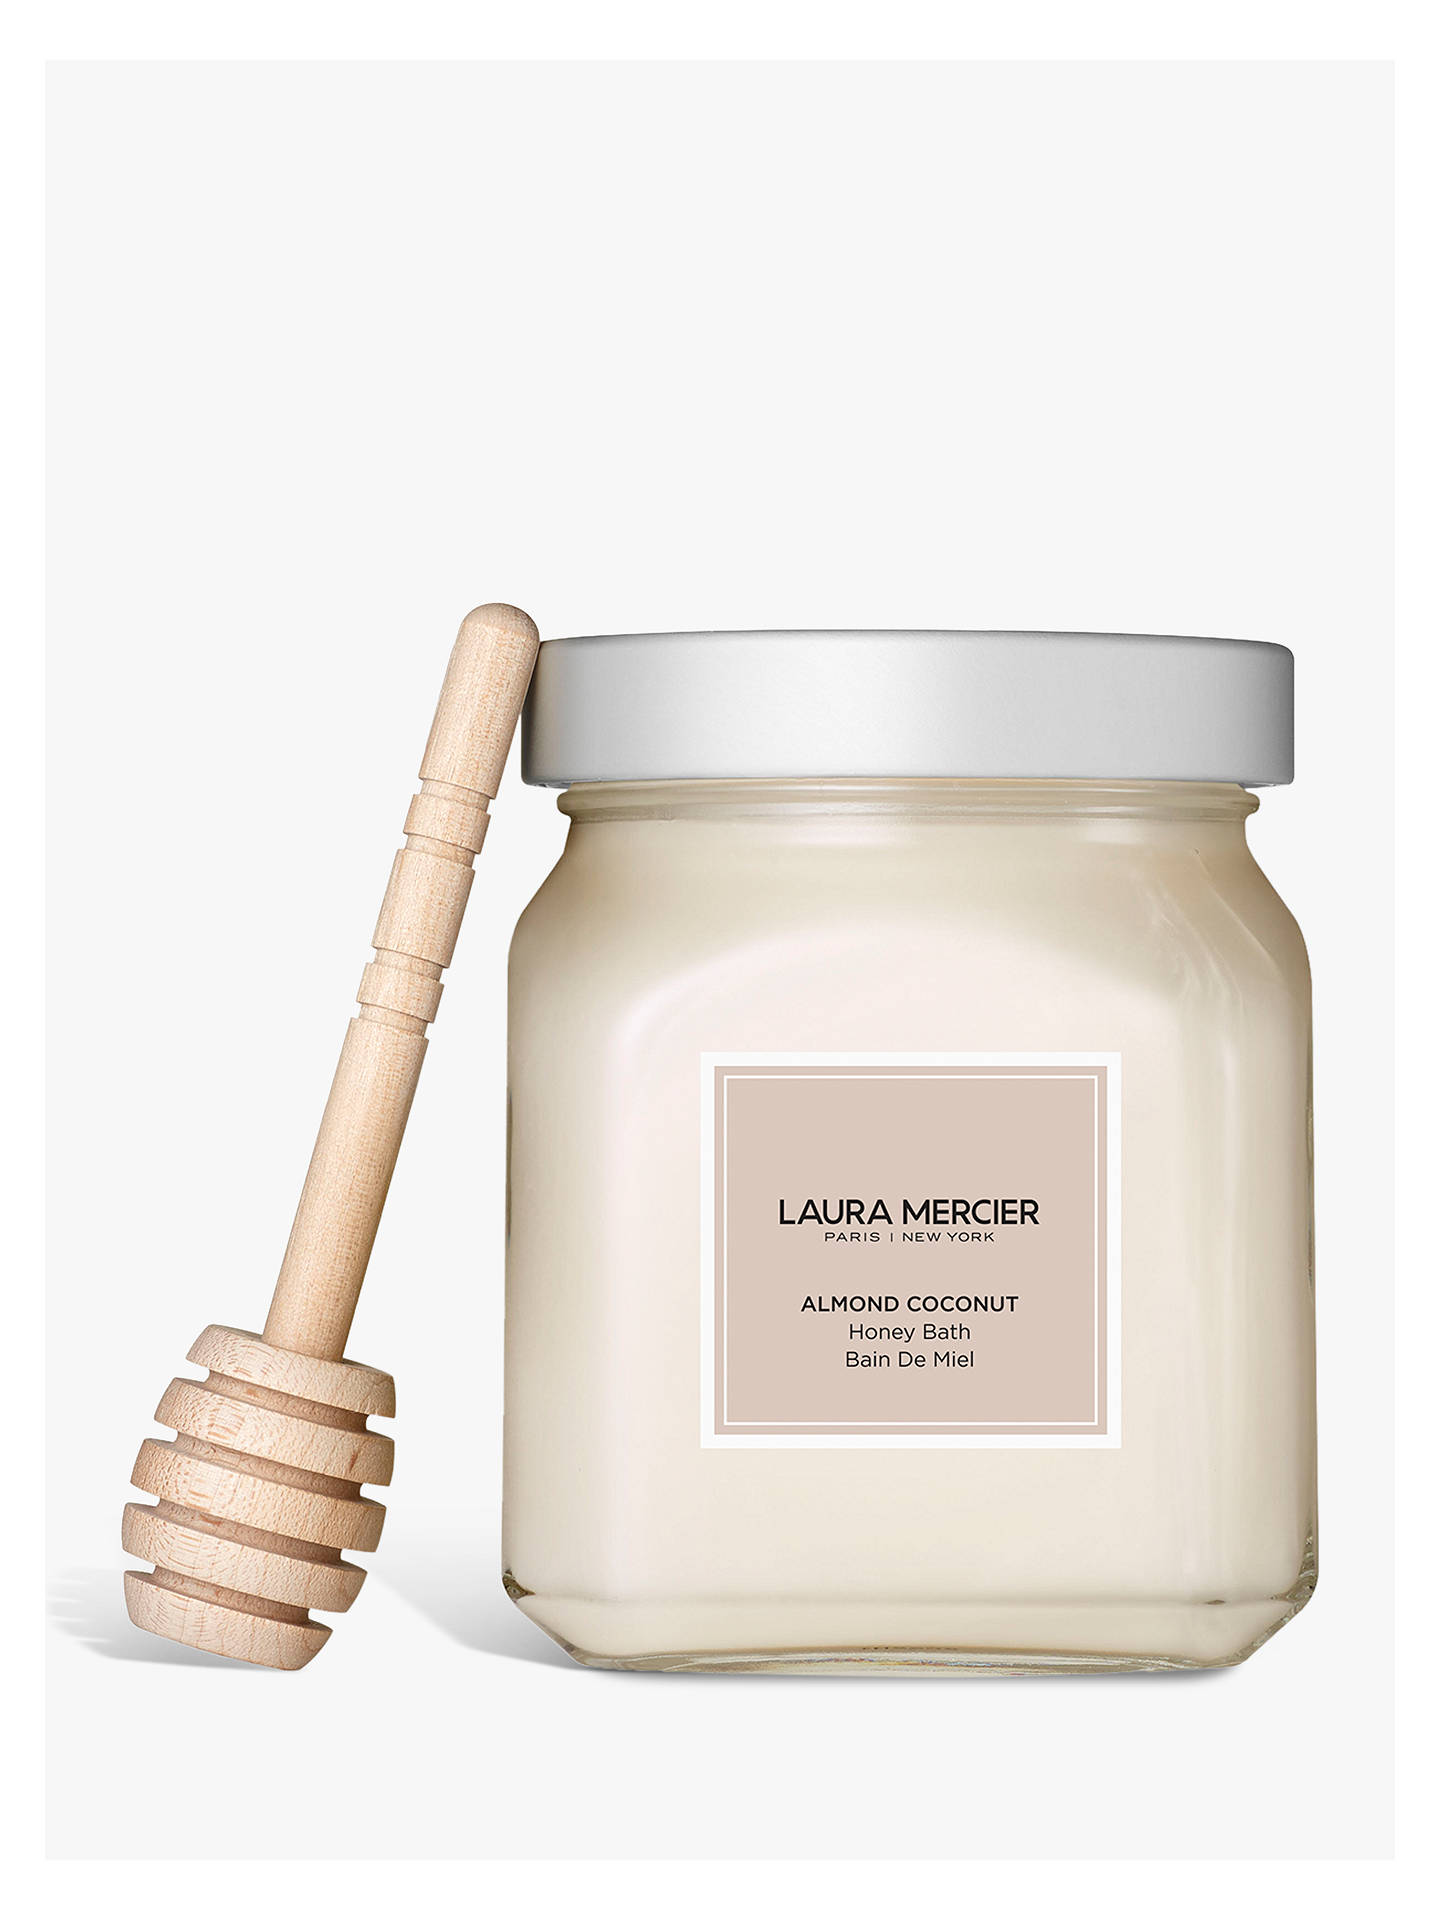 Buy Laura Mercier Almond Coconut Milk Honey Bath, 300g Online at johnlewis.com